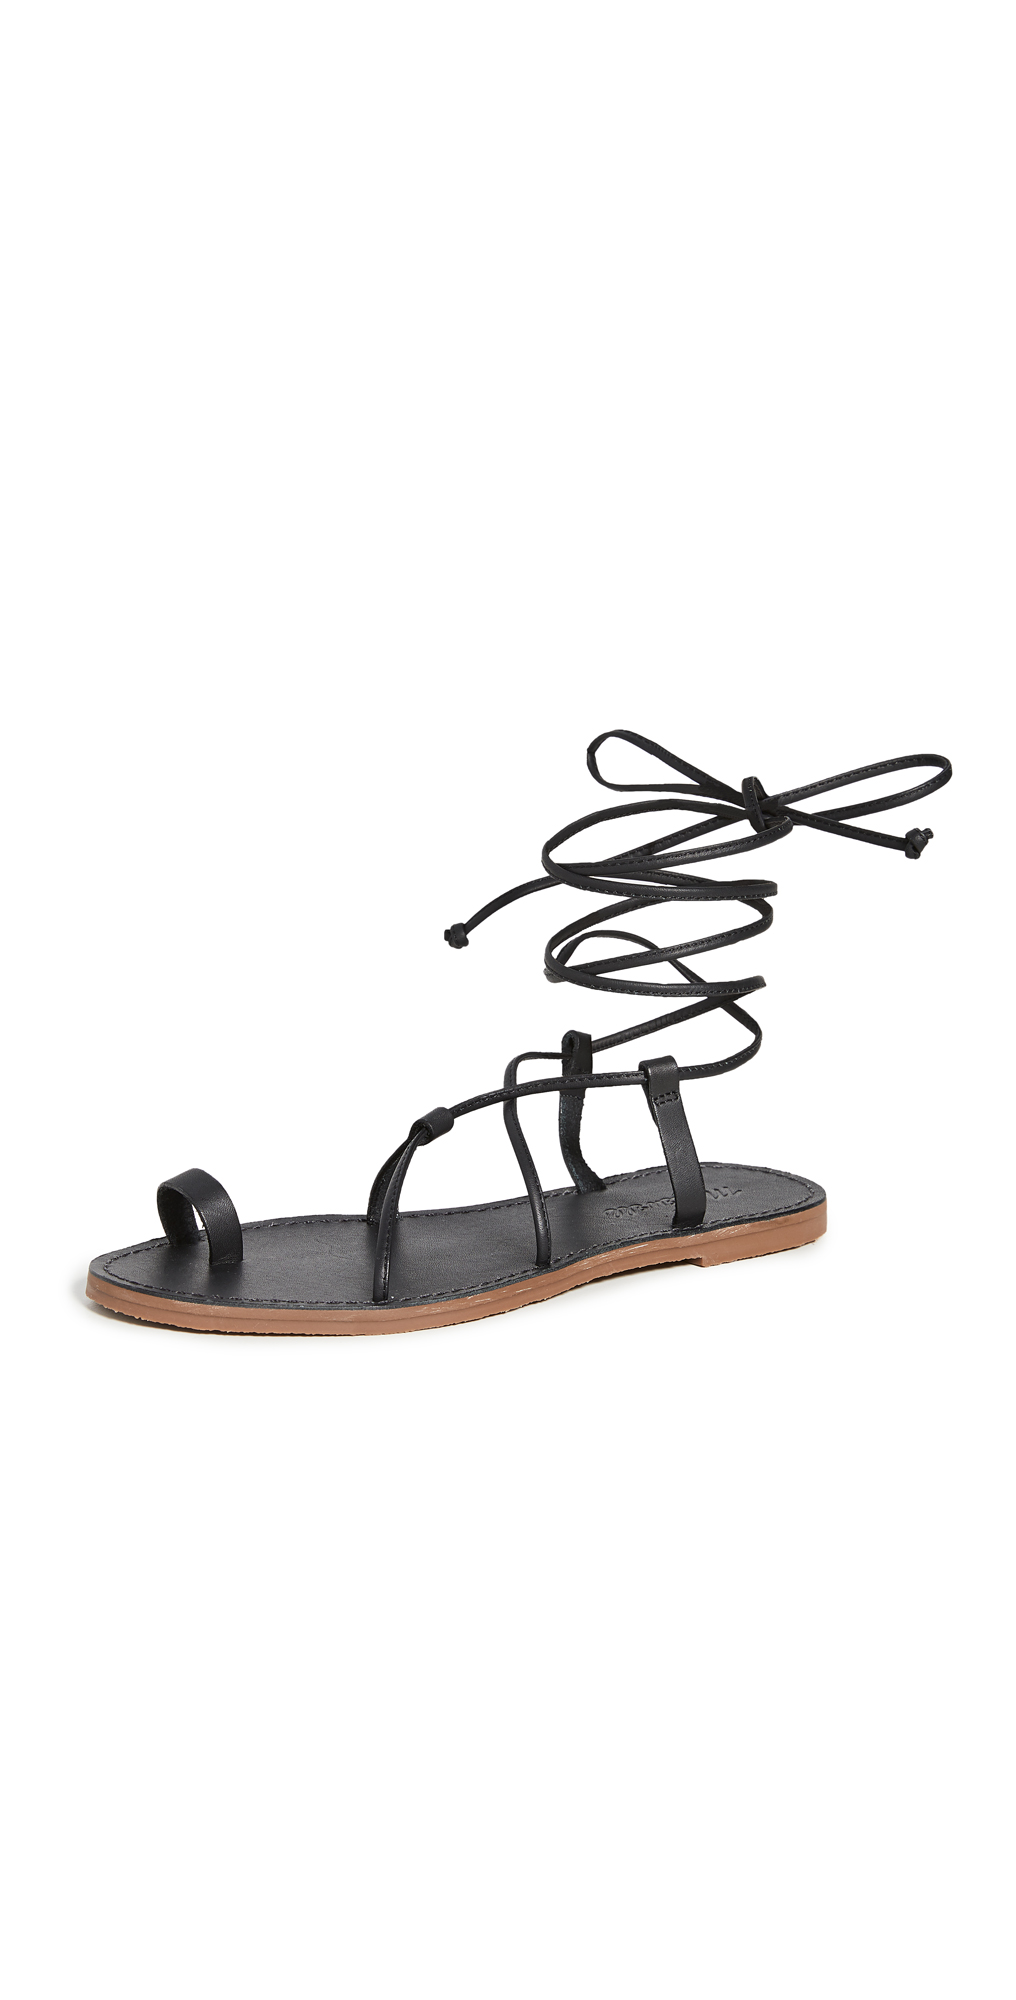 Madewell Ronda Boardwalk Lace Up Sandals